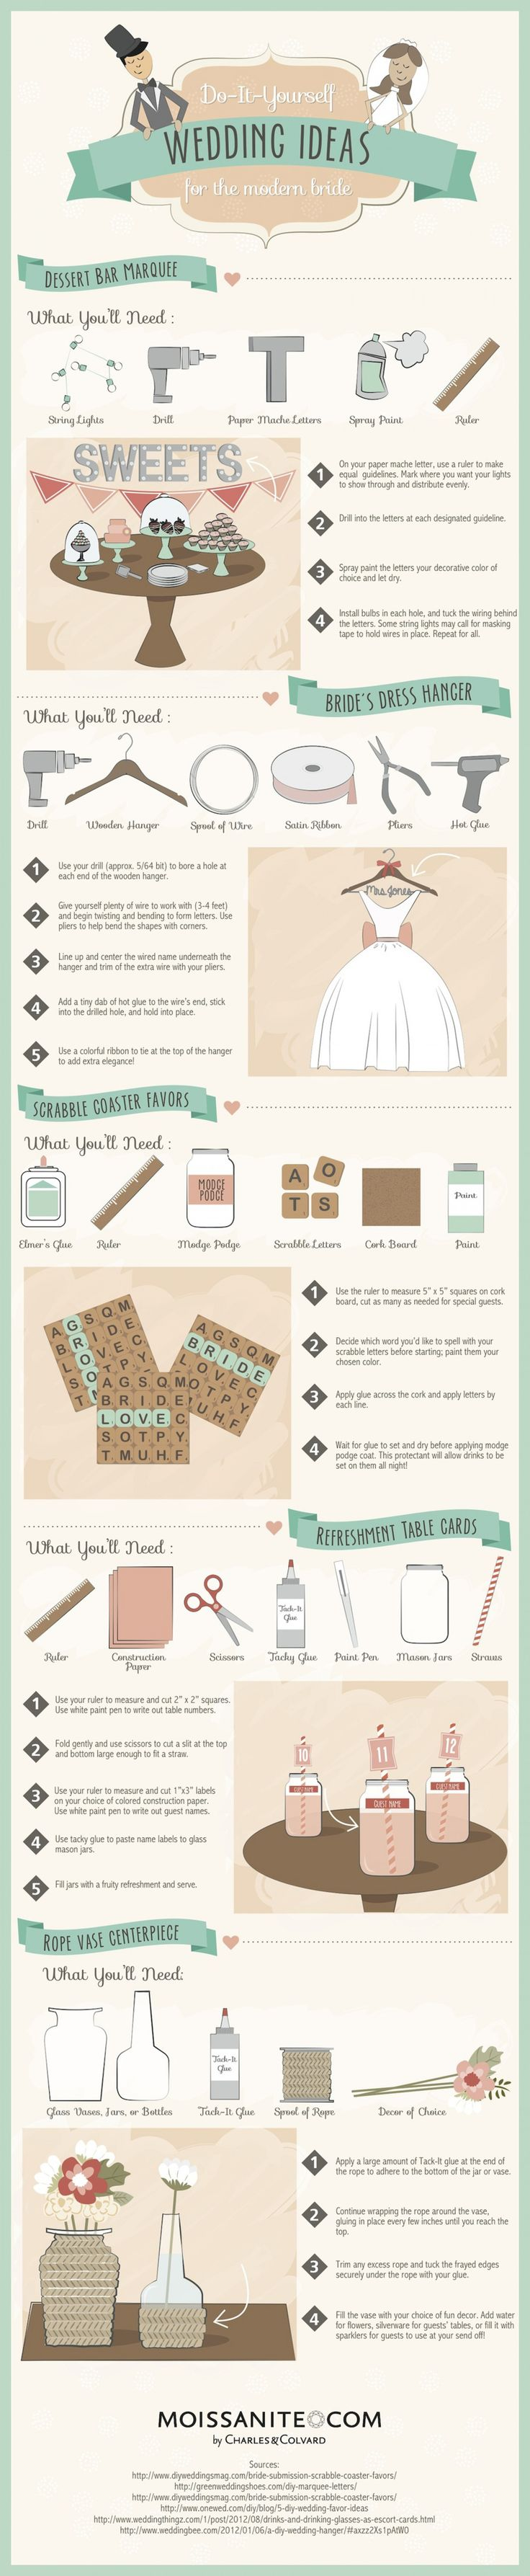 Do It Yourself Wedding Ideas | Do-It-Yourself Wedding Ideas for the Modern Bride Infographic